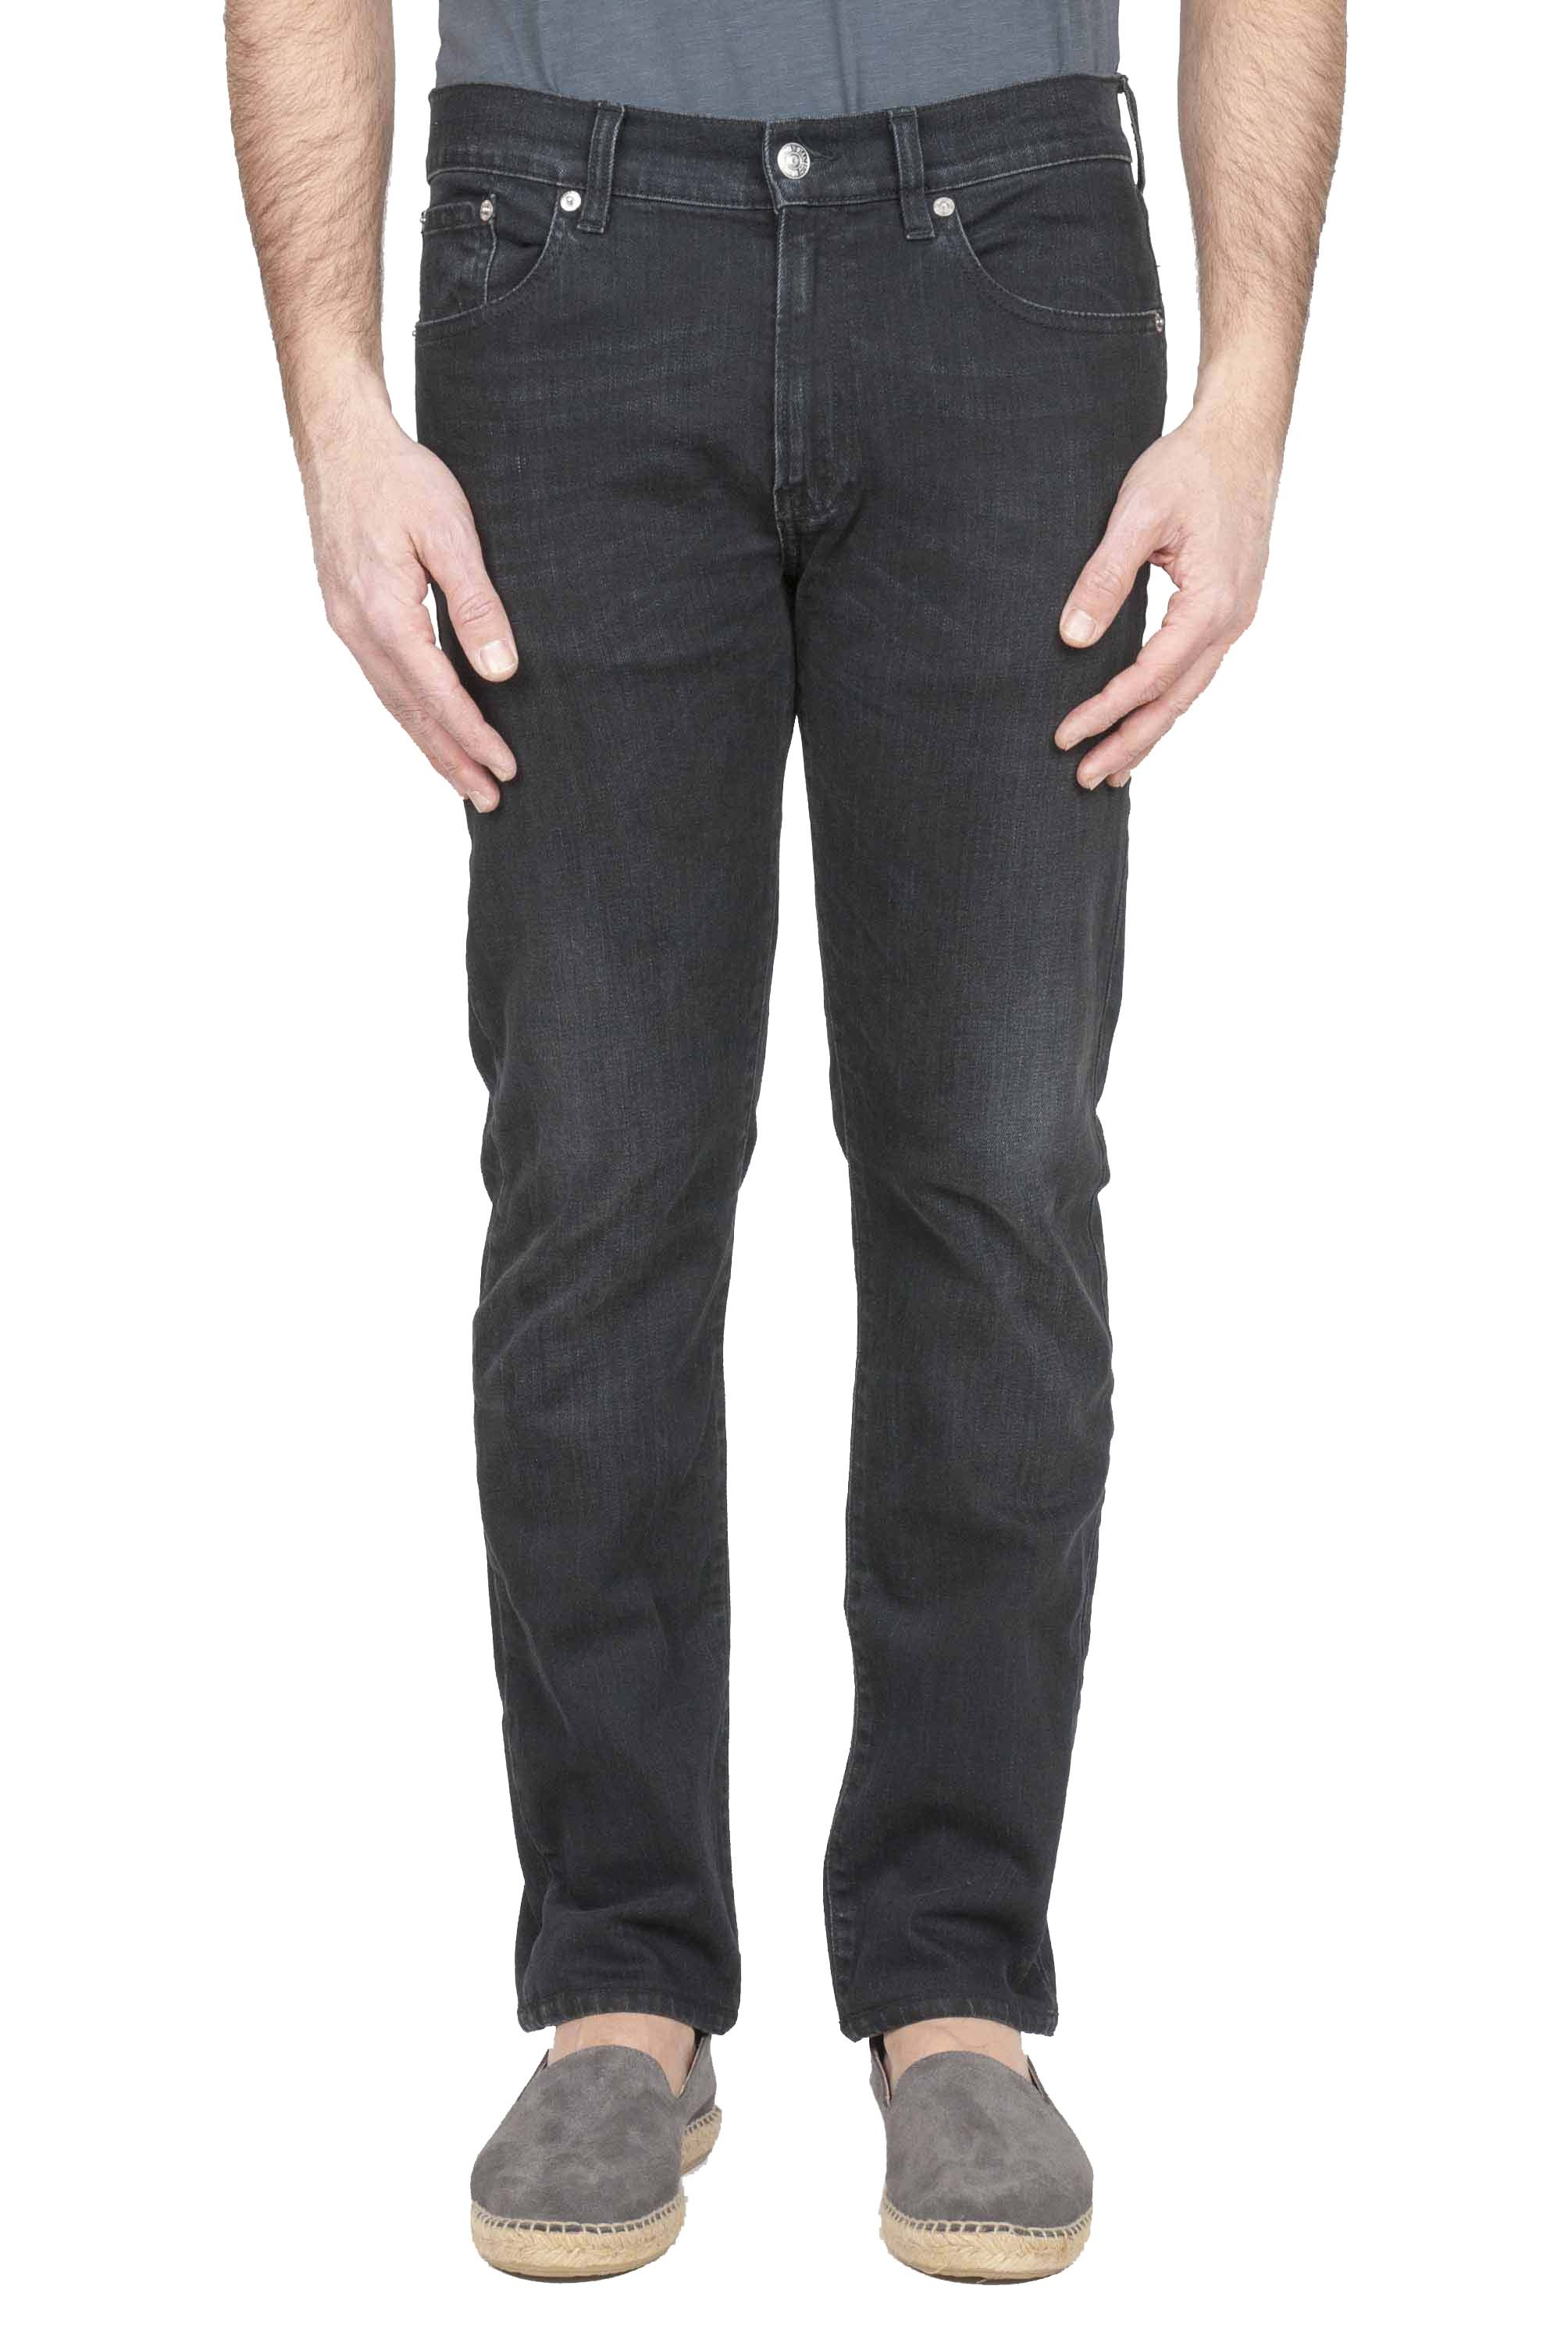 SBU 01122 Vaqueros en denim stretch 01